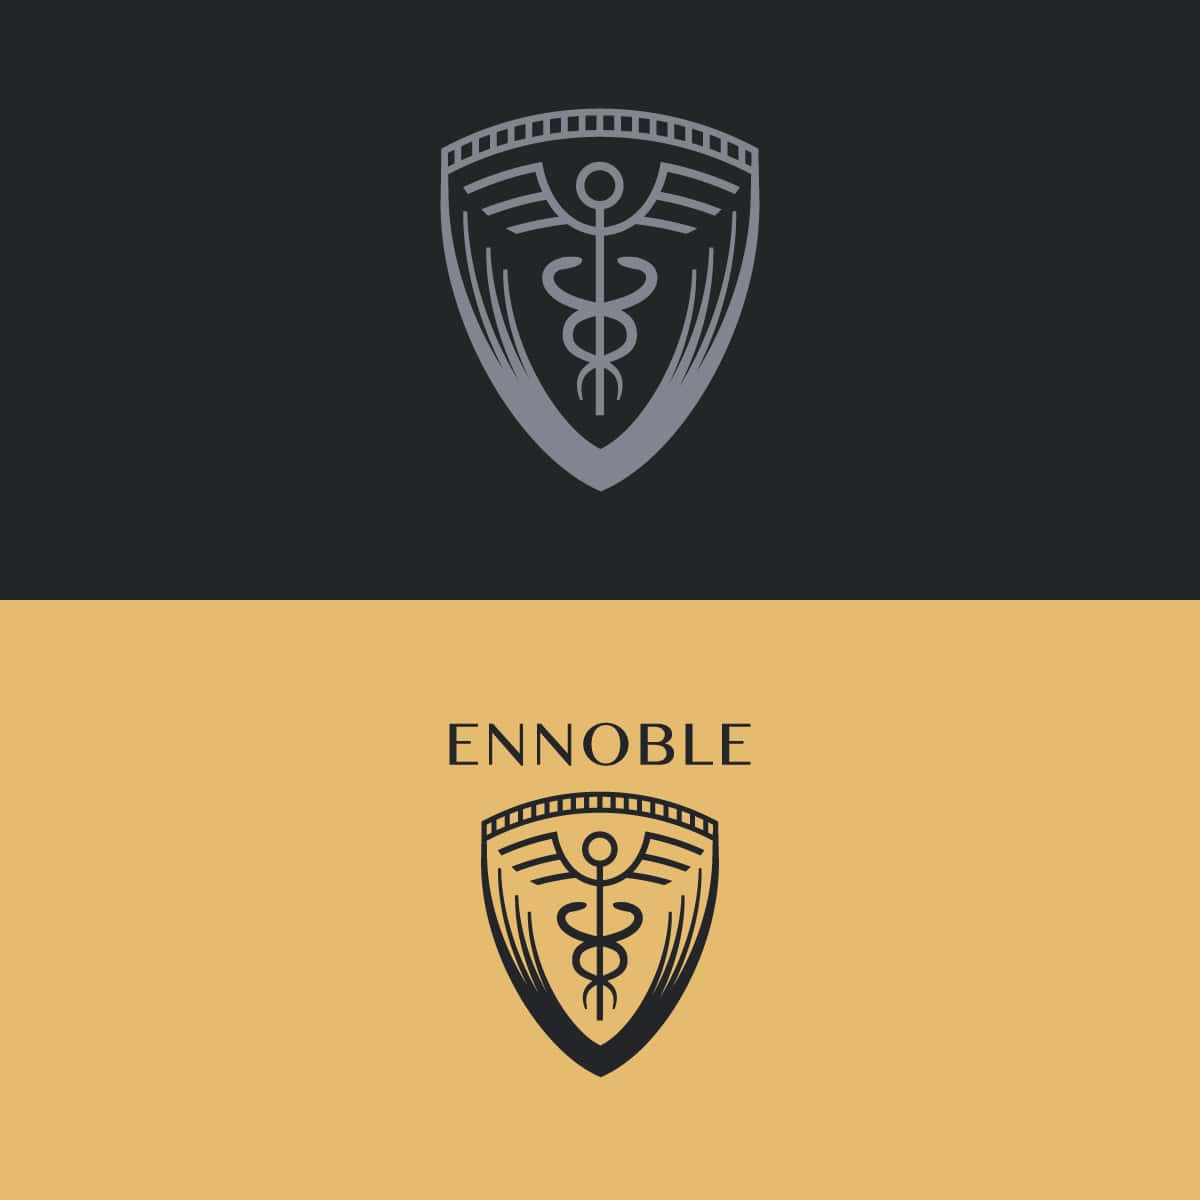 Ennoble logo in two colors